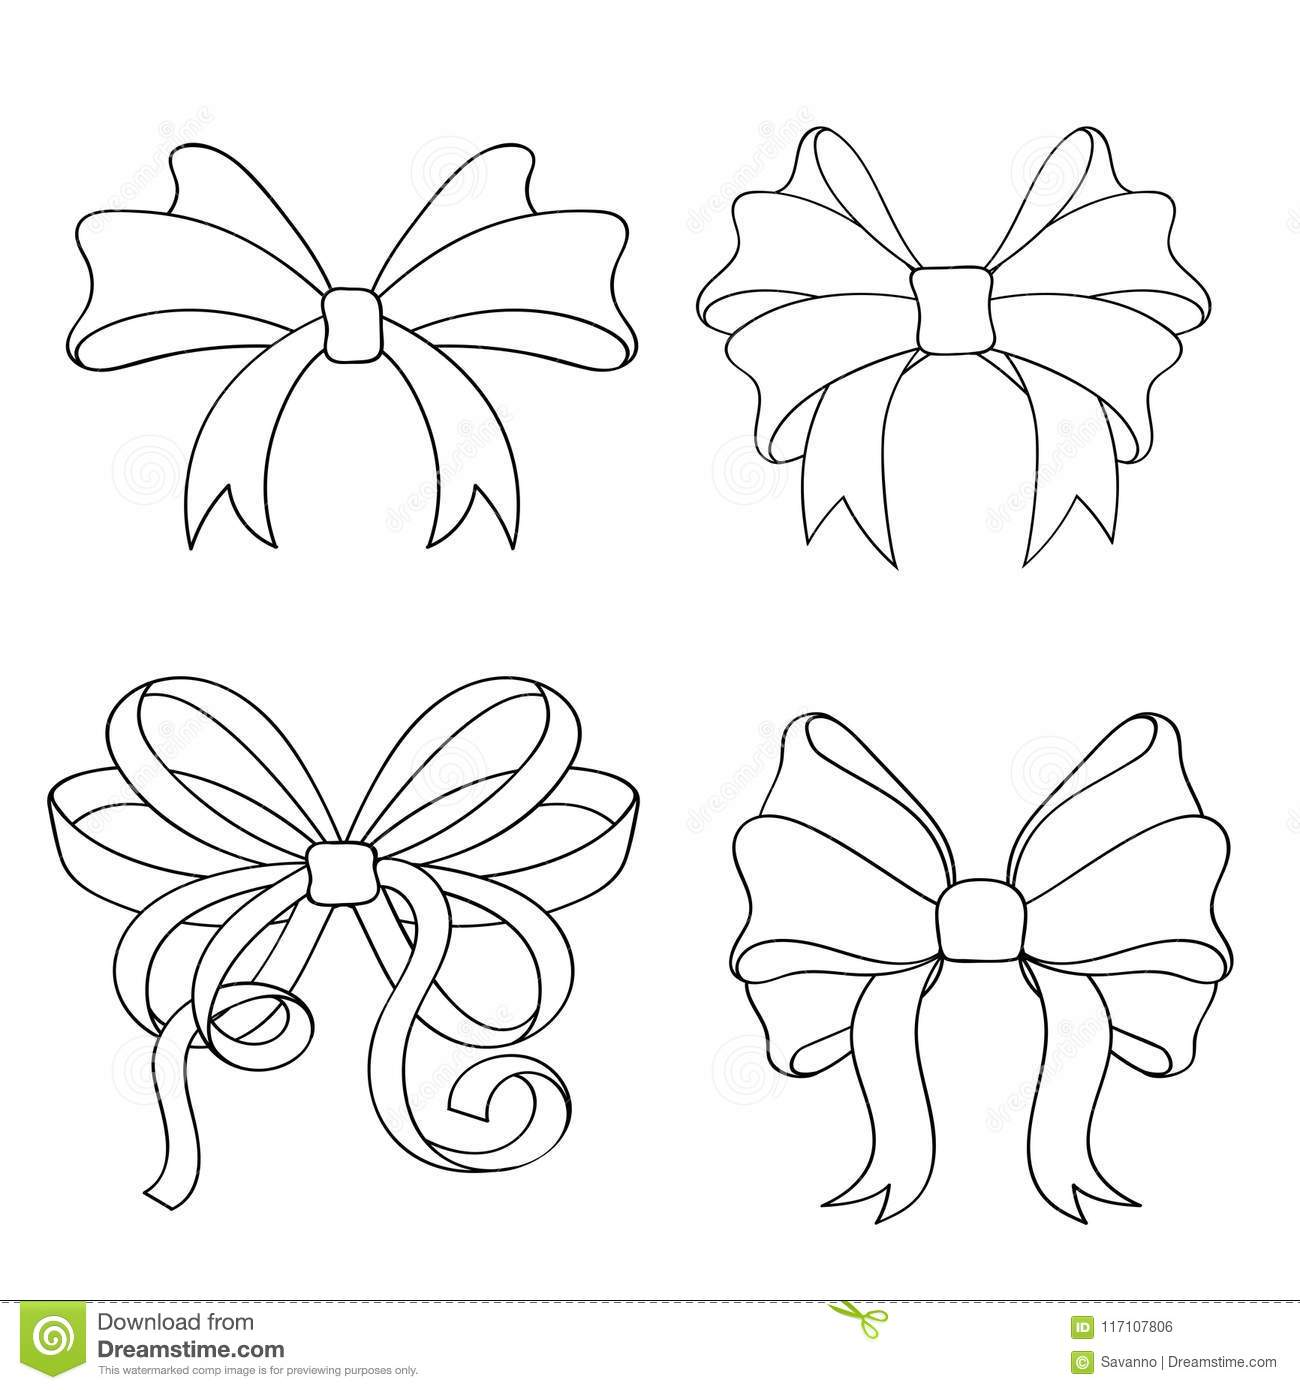 Ribbon Bow Set Outline Drawings Of Ribbon Tied In Knot